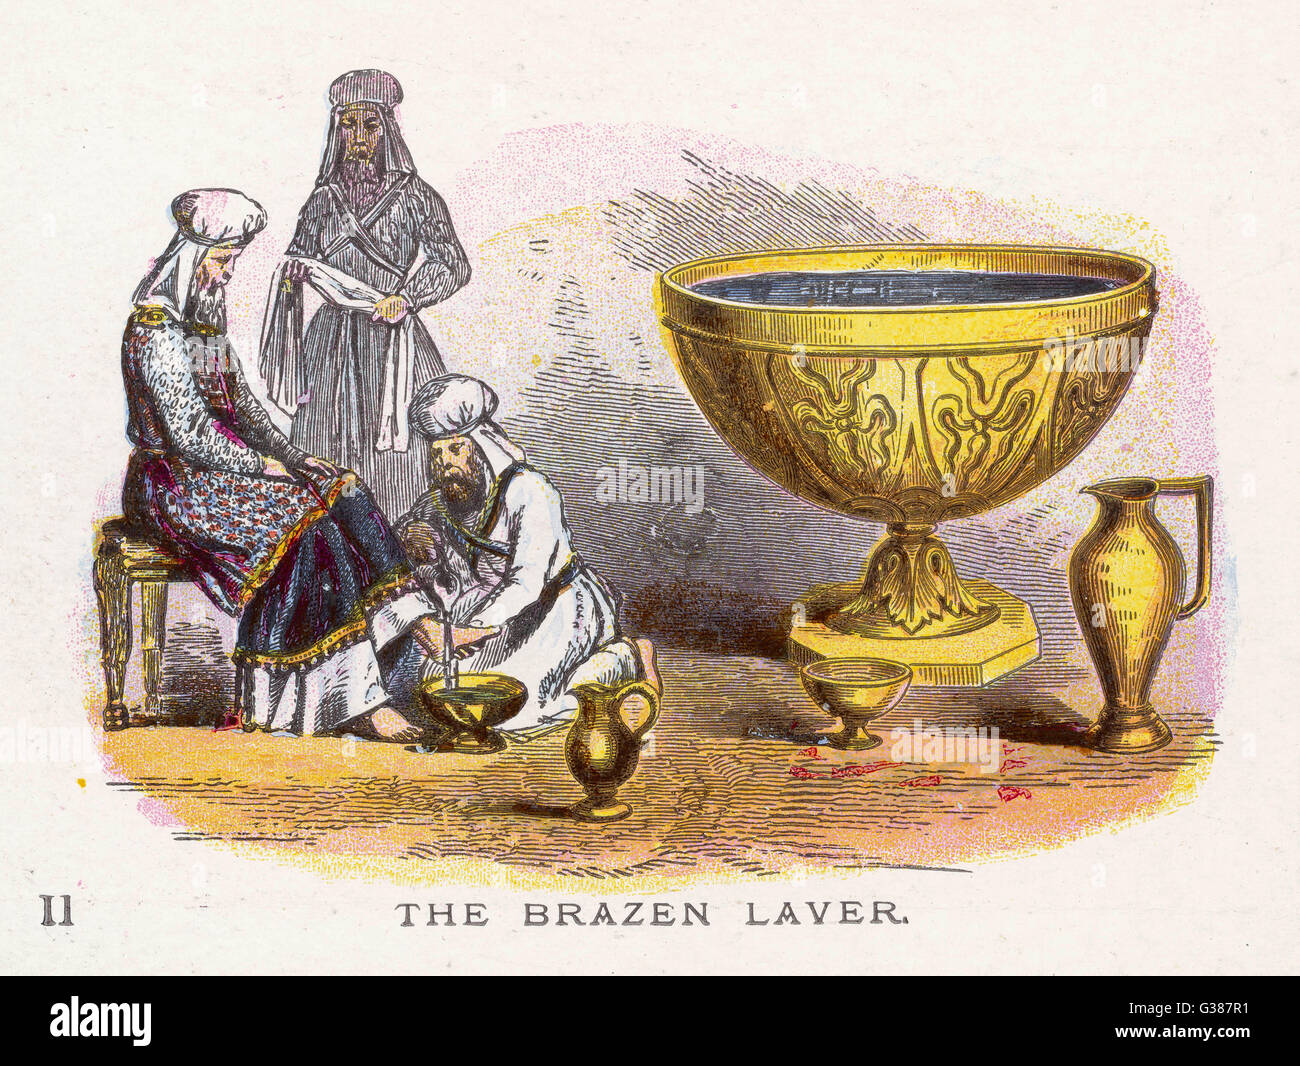 Ceremonial objects : THE BRAZEN LAVER - Stock Image